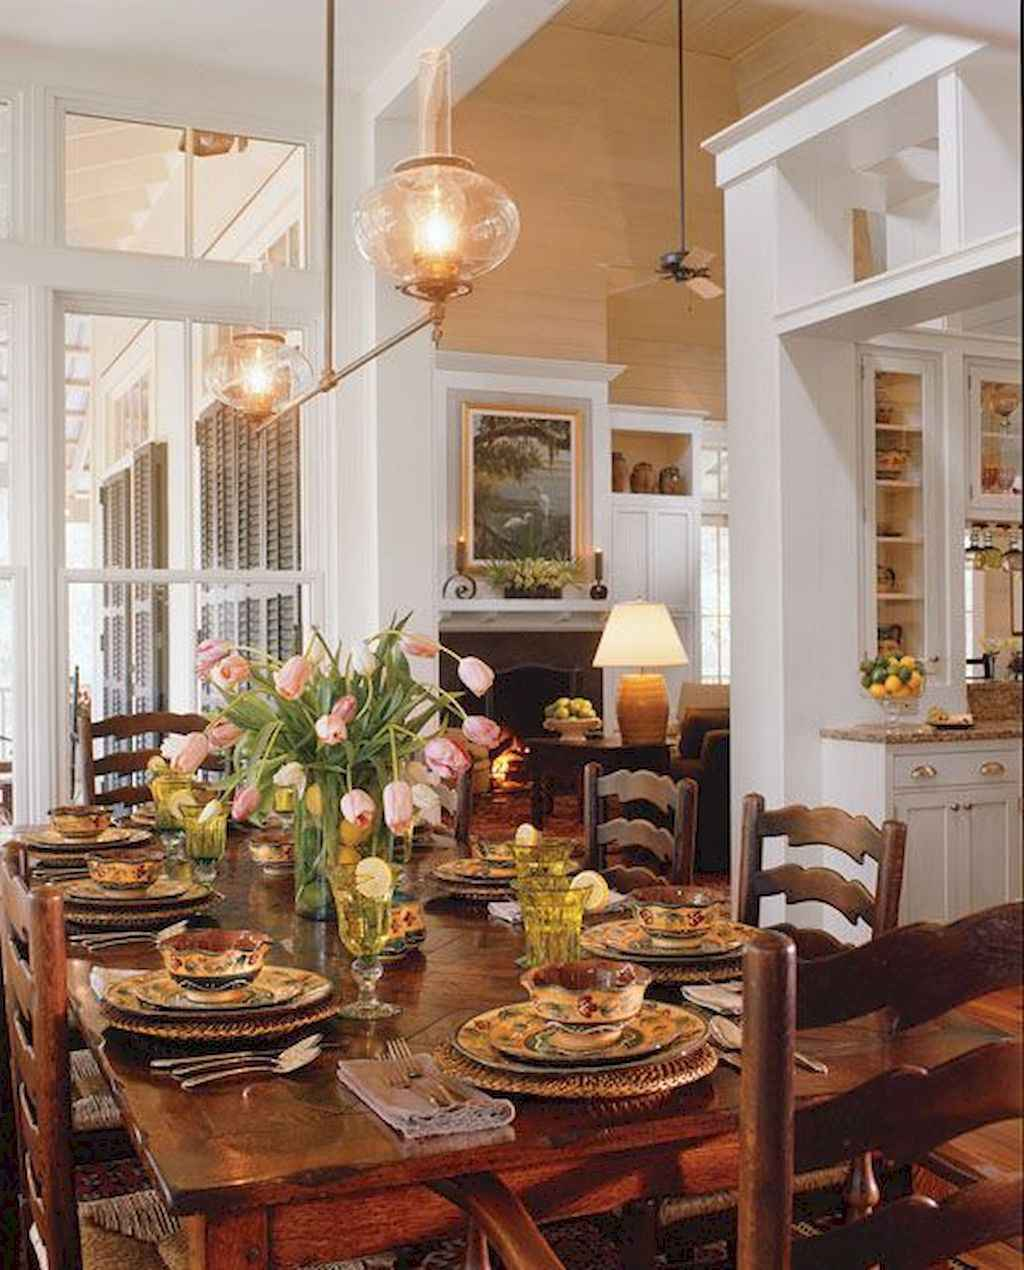 French Country Kitchen Accessories: 45 Simple French Country Kitchen Decor Ideas